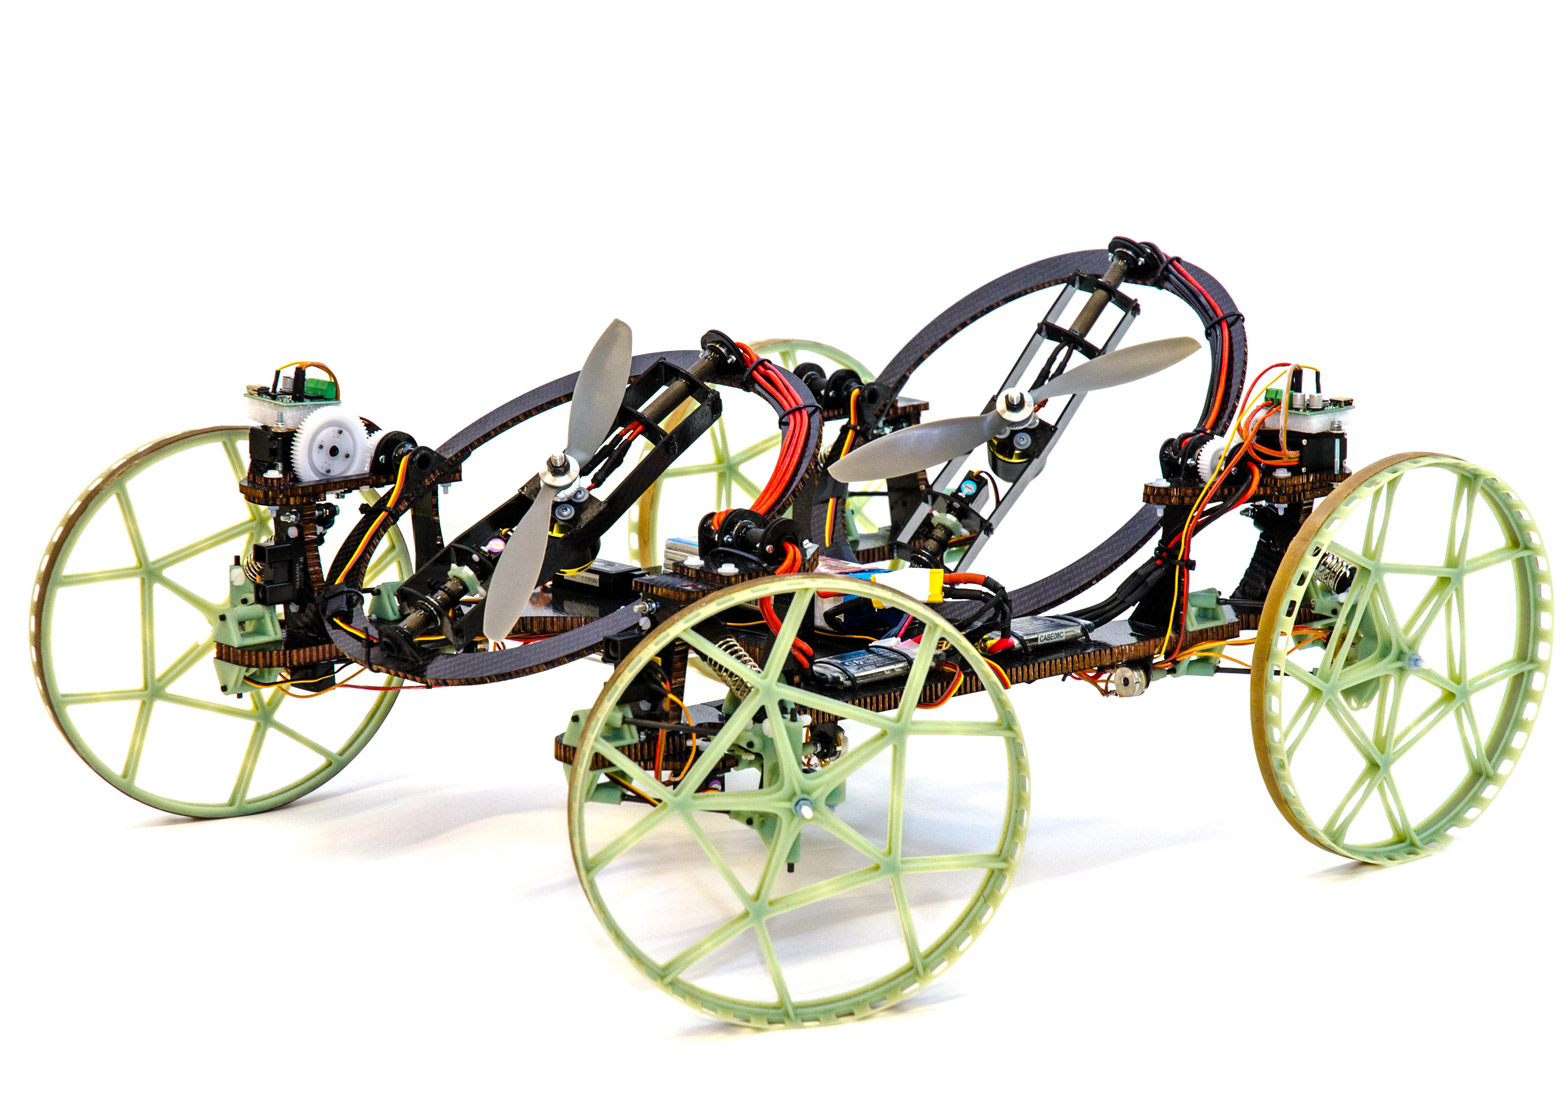 """wall climbing robot """"the robot is able to move on a wall quickly and with agility"""" the robot, which has a built in control system, is designed to be maneuvered much like a toy remote-controlled car."""